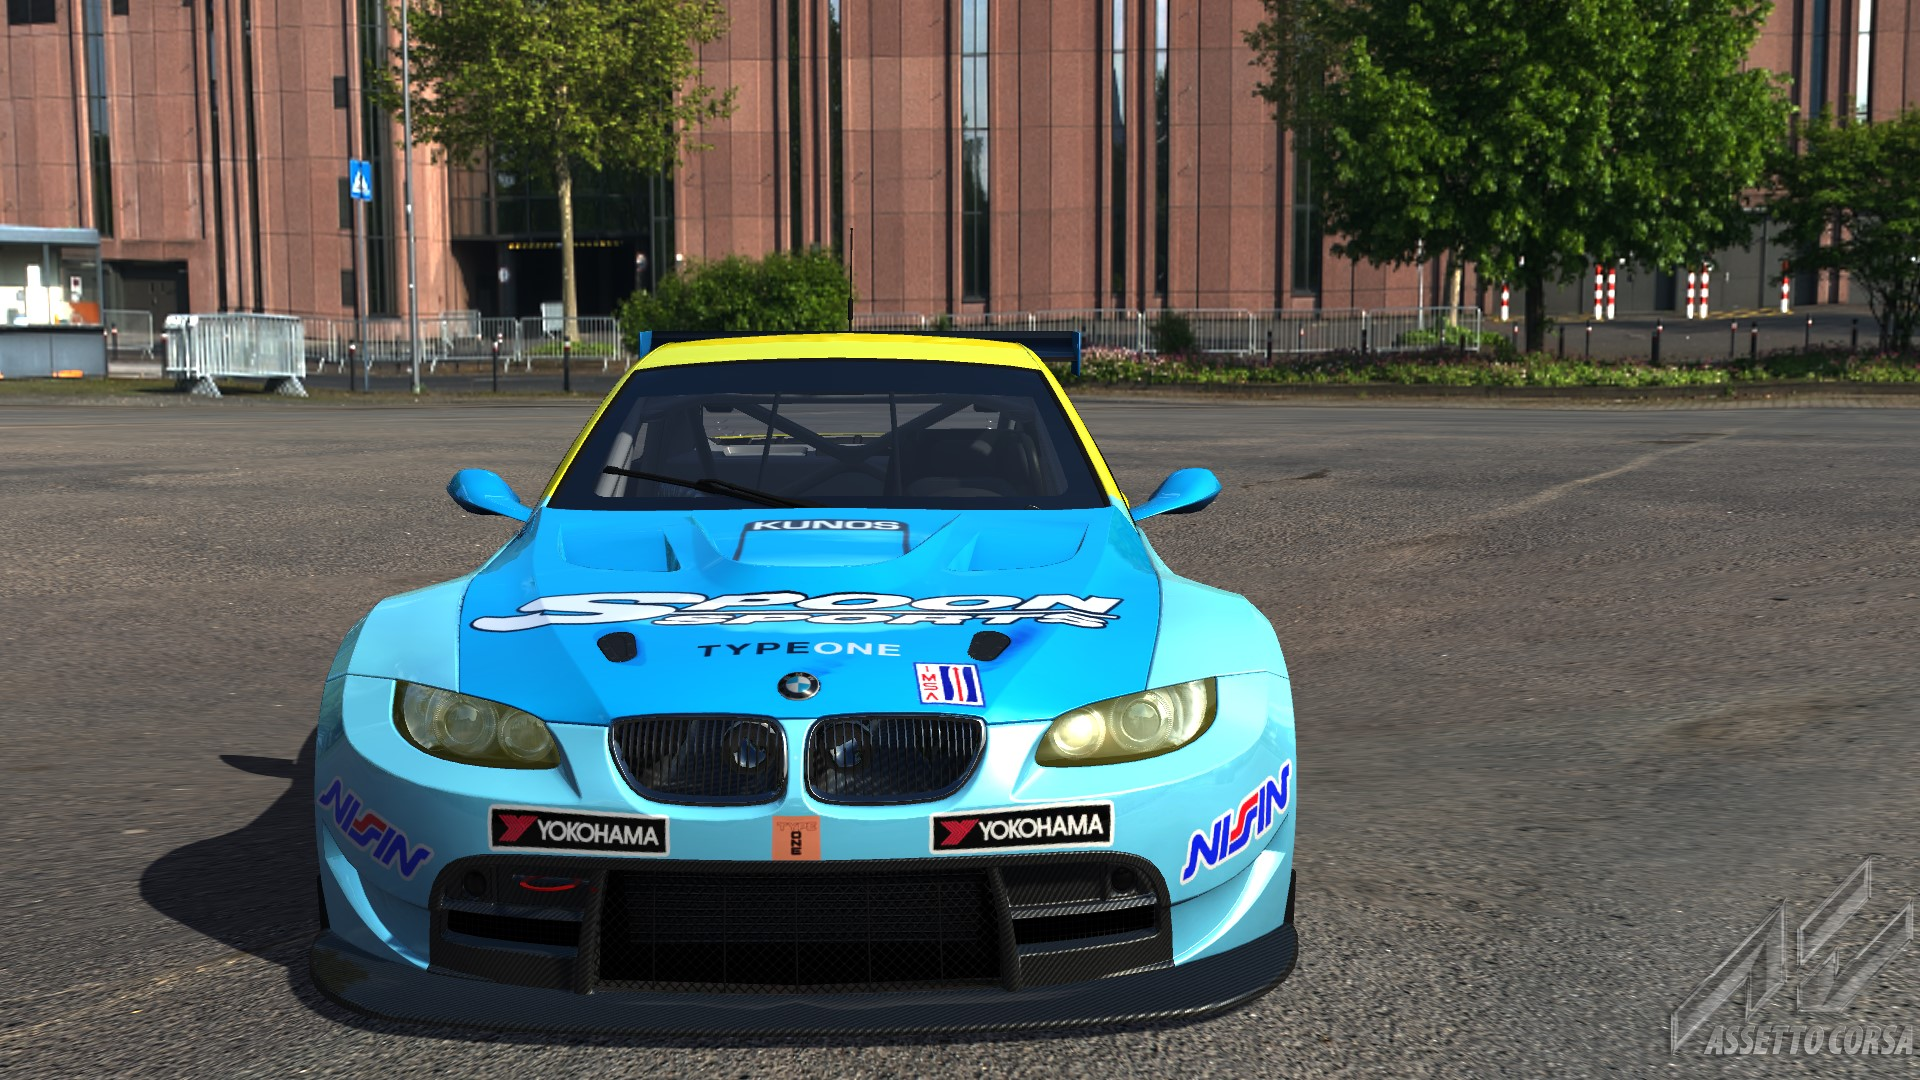 Showroom_bmw_m3_gt2_18-12-2013-6-42-40.jpg